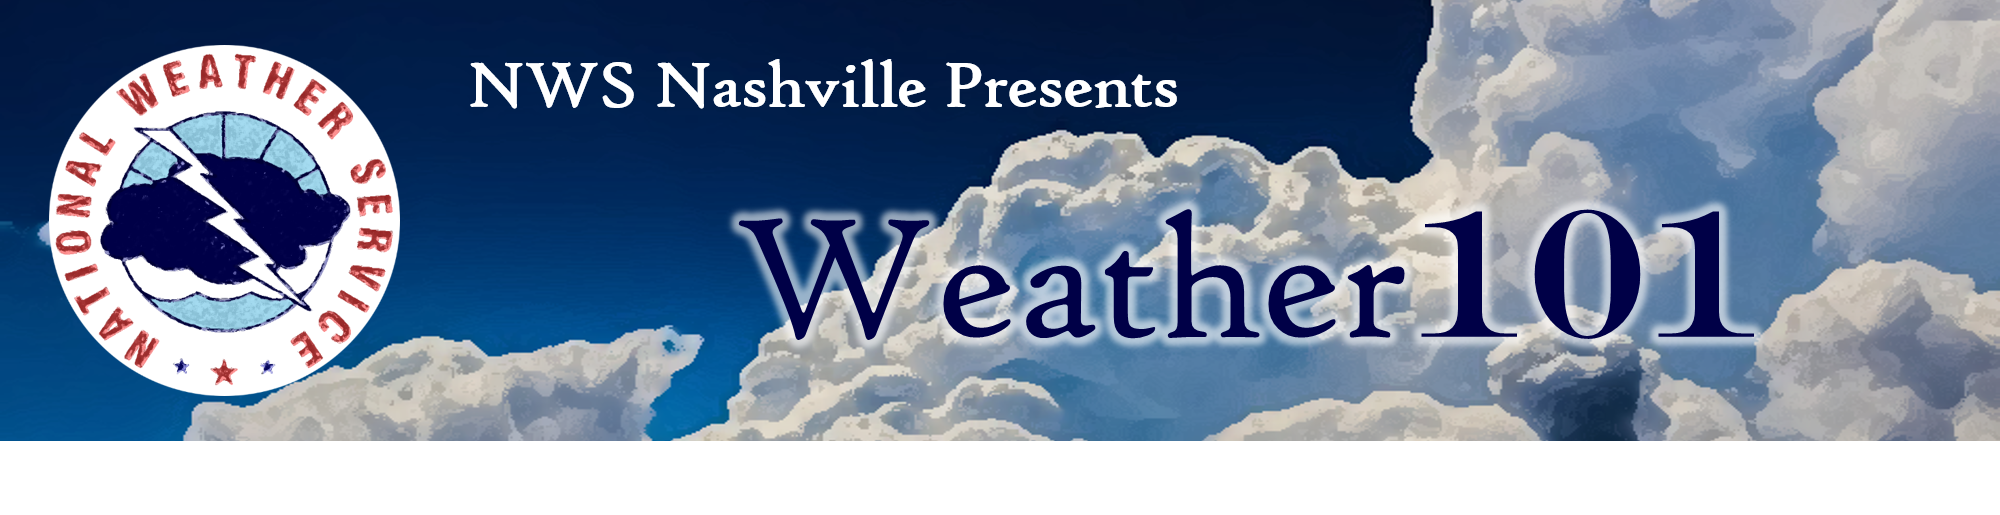 Nashville weather april 2020